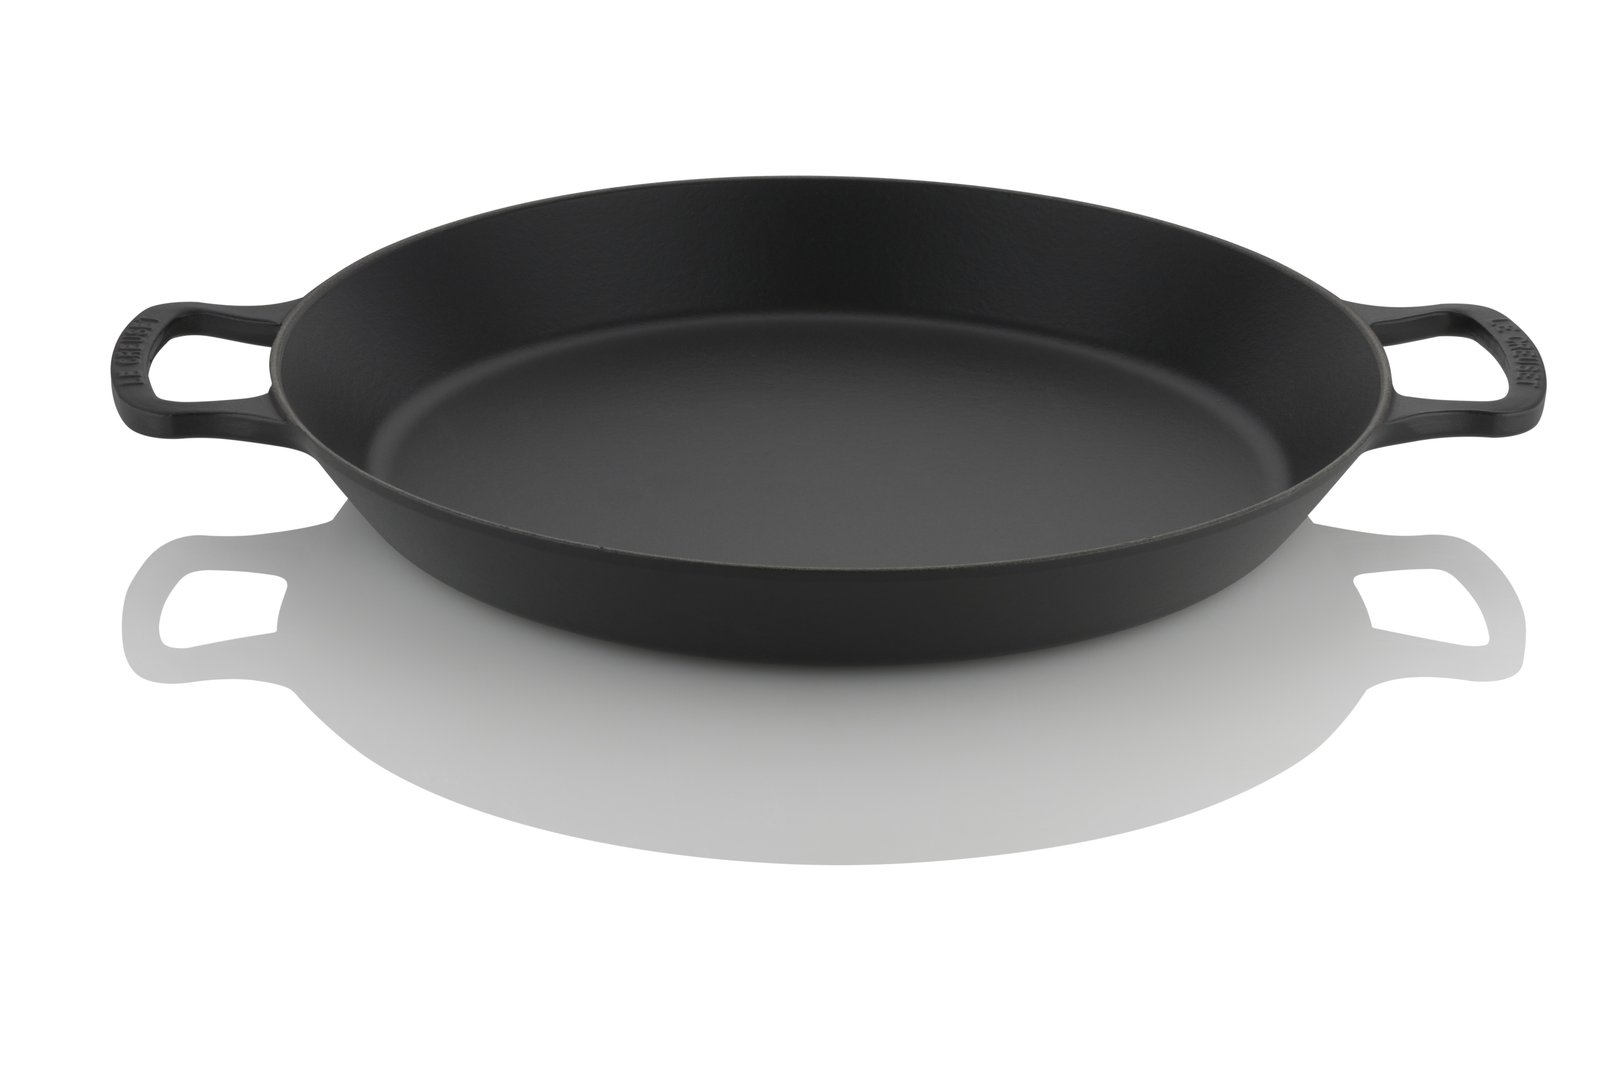 le creuset paella pfanne 34 cm kochgut. Black Bedroom Furniture Sets. Home Design Ideas